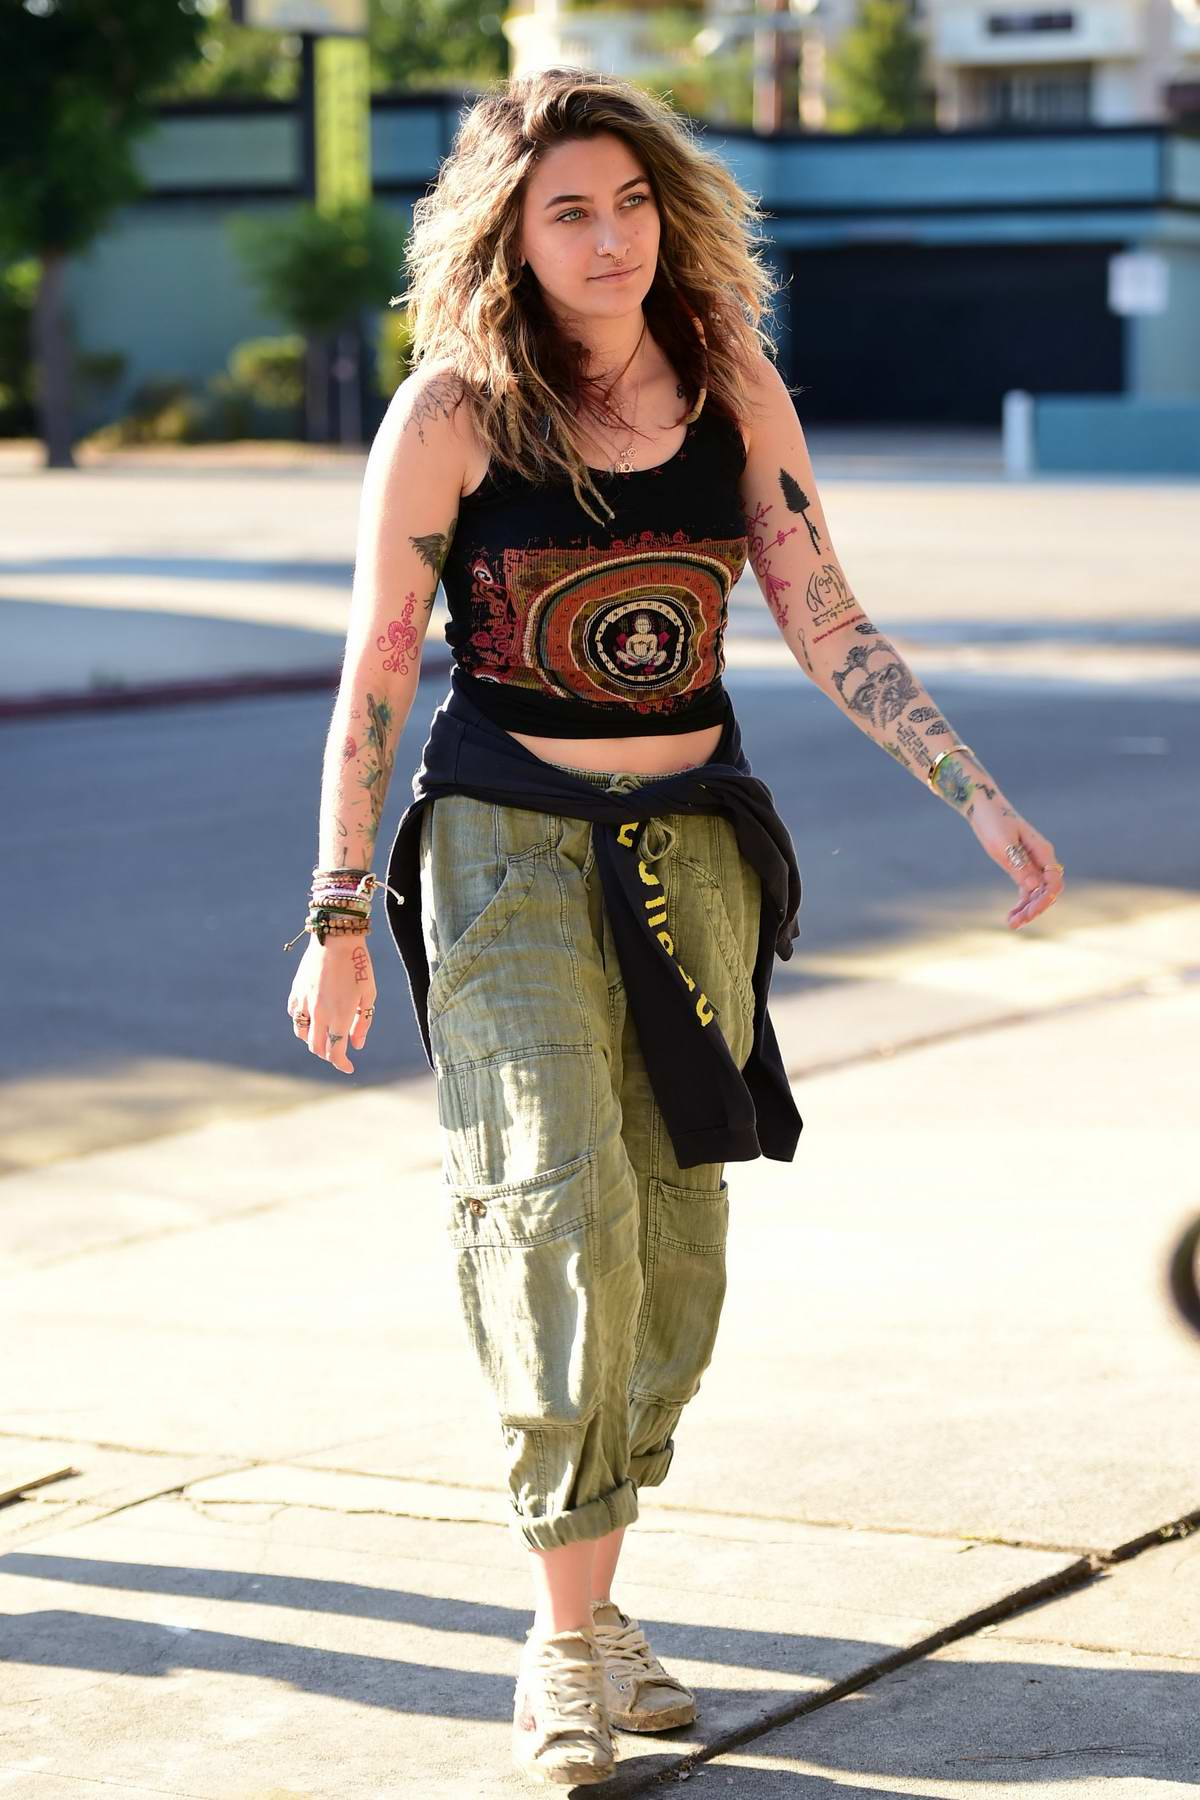 Paris Jackson sports her usual boho-chic style as she while visiting a studio in Los Angeles